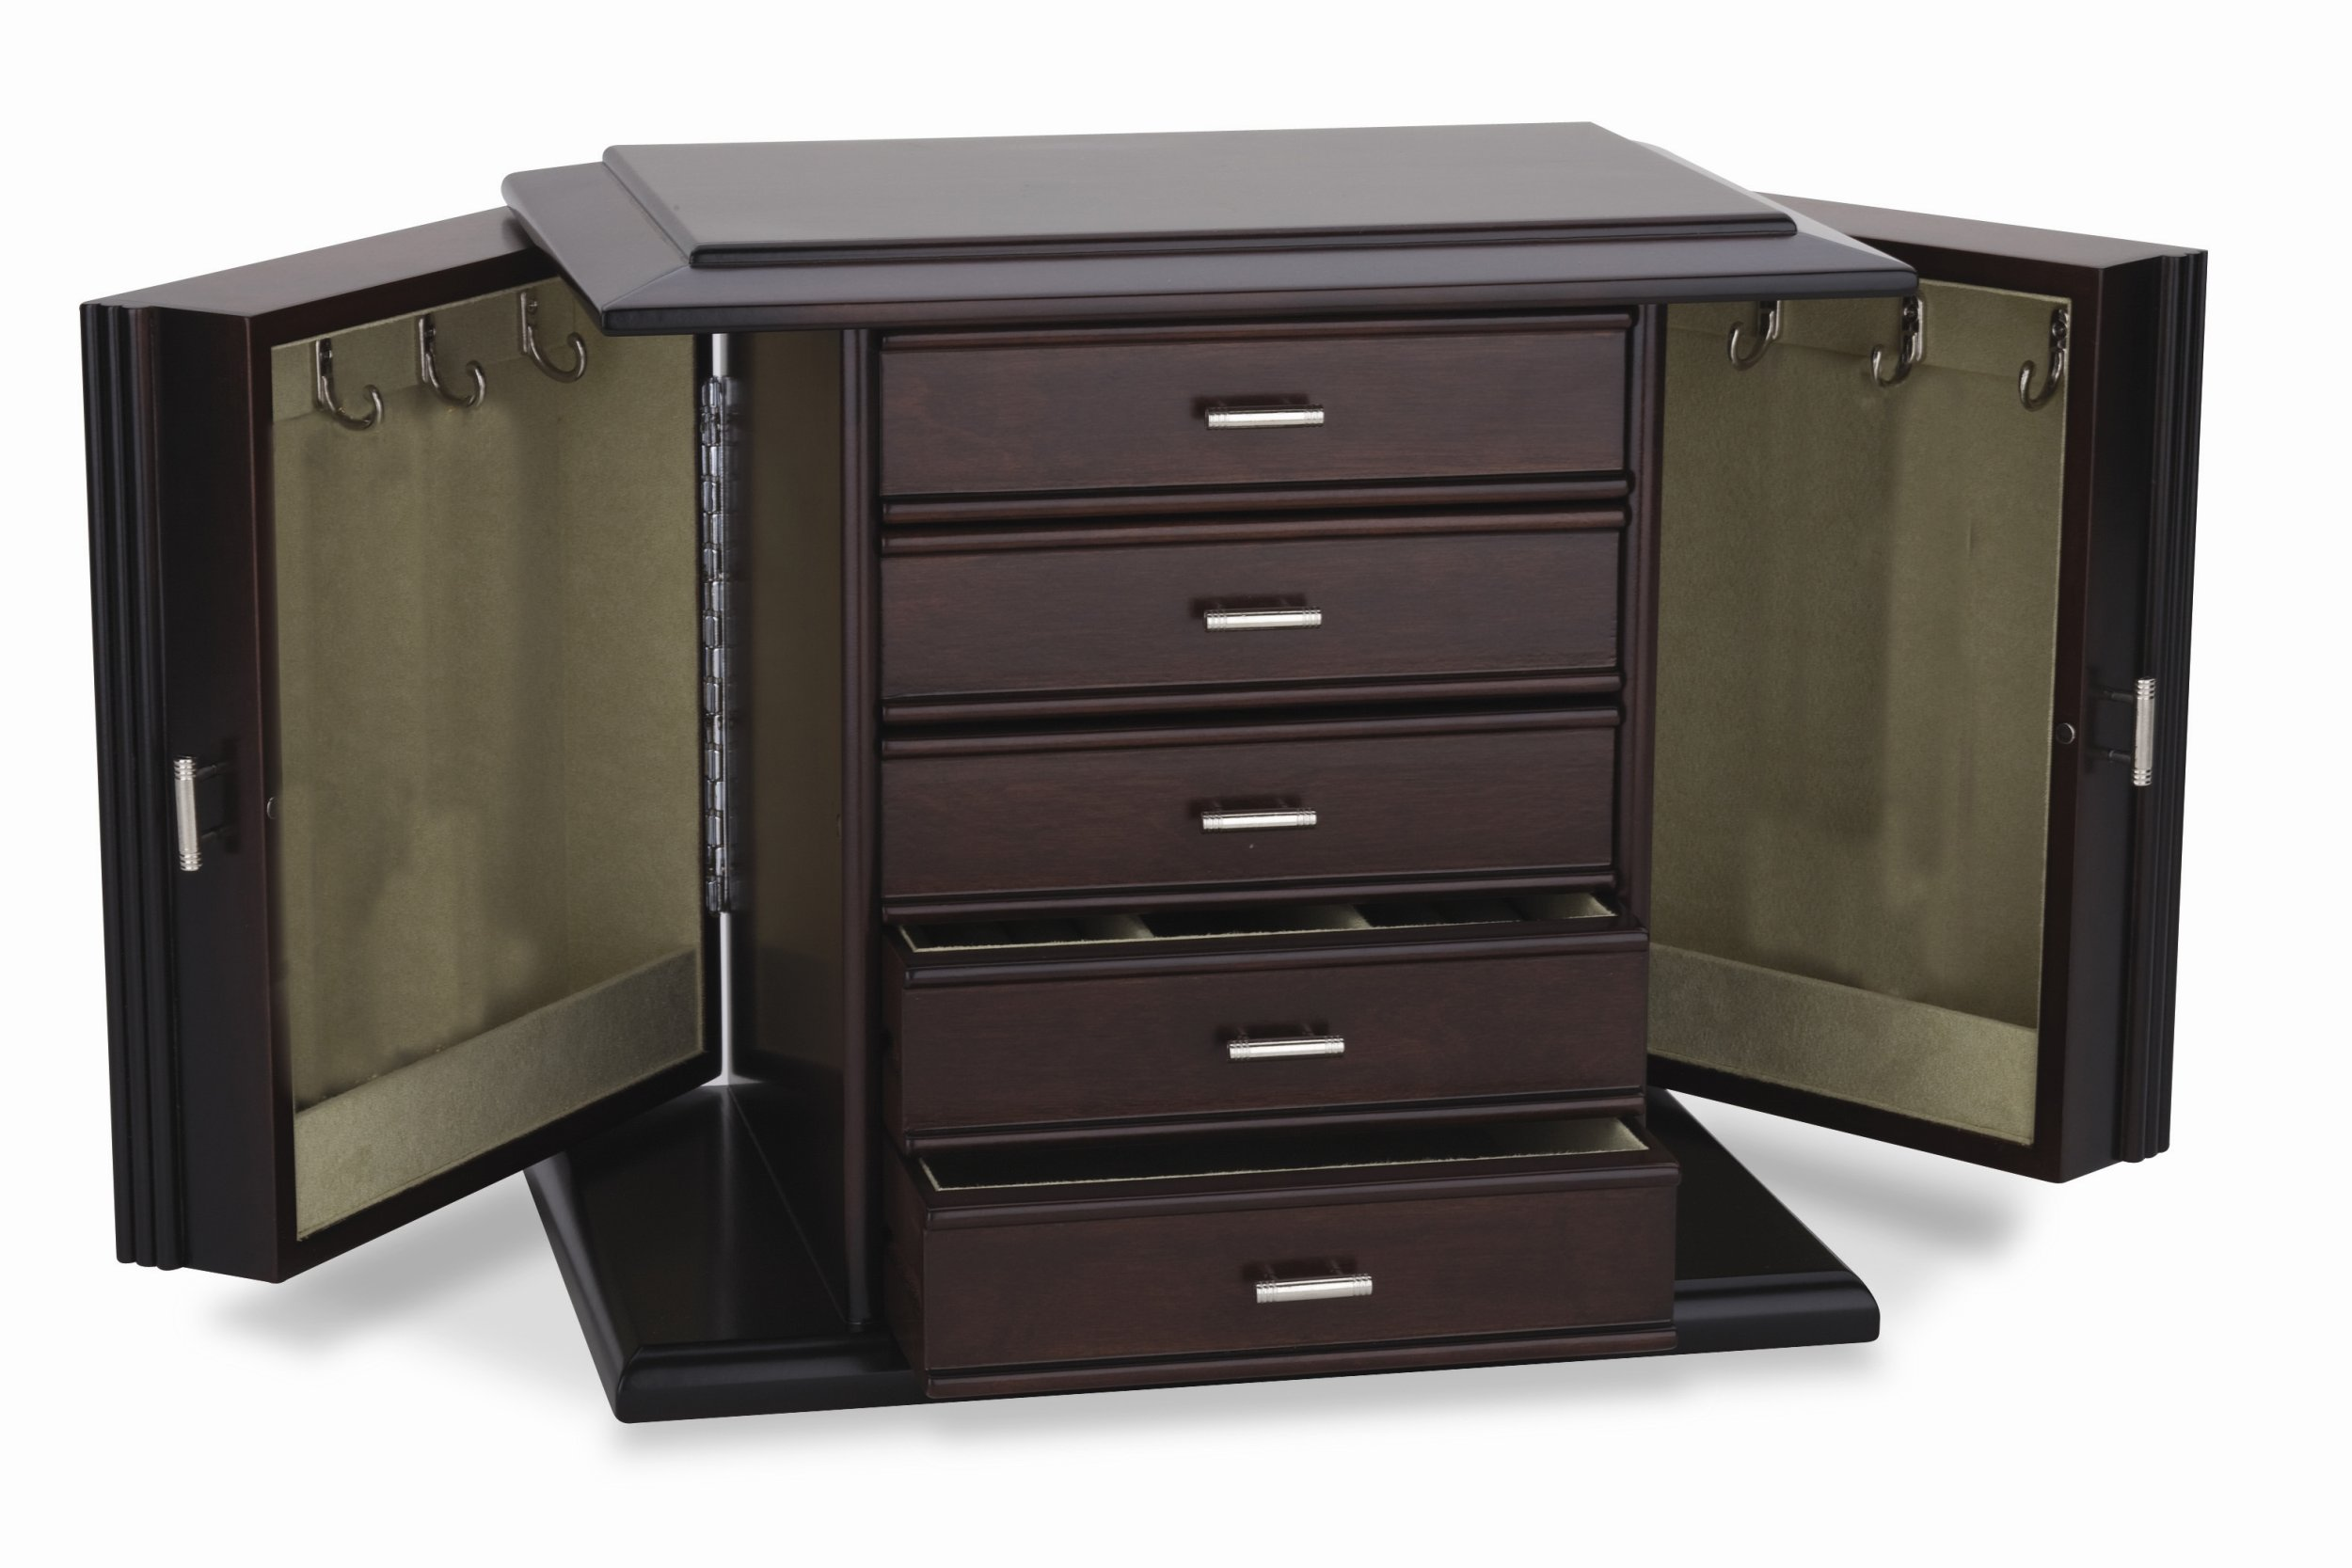 Reed & Barton Diva Jewelry Chest by Reed & Barton